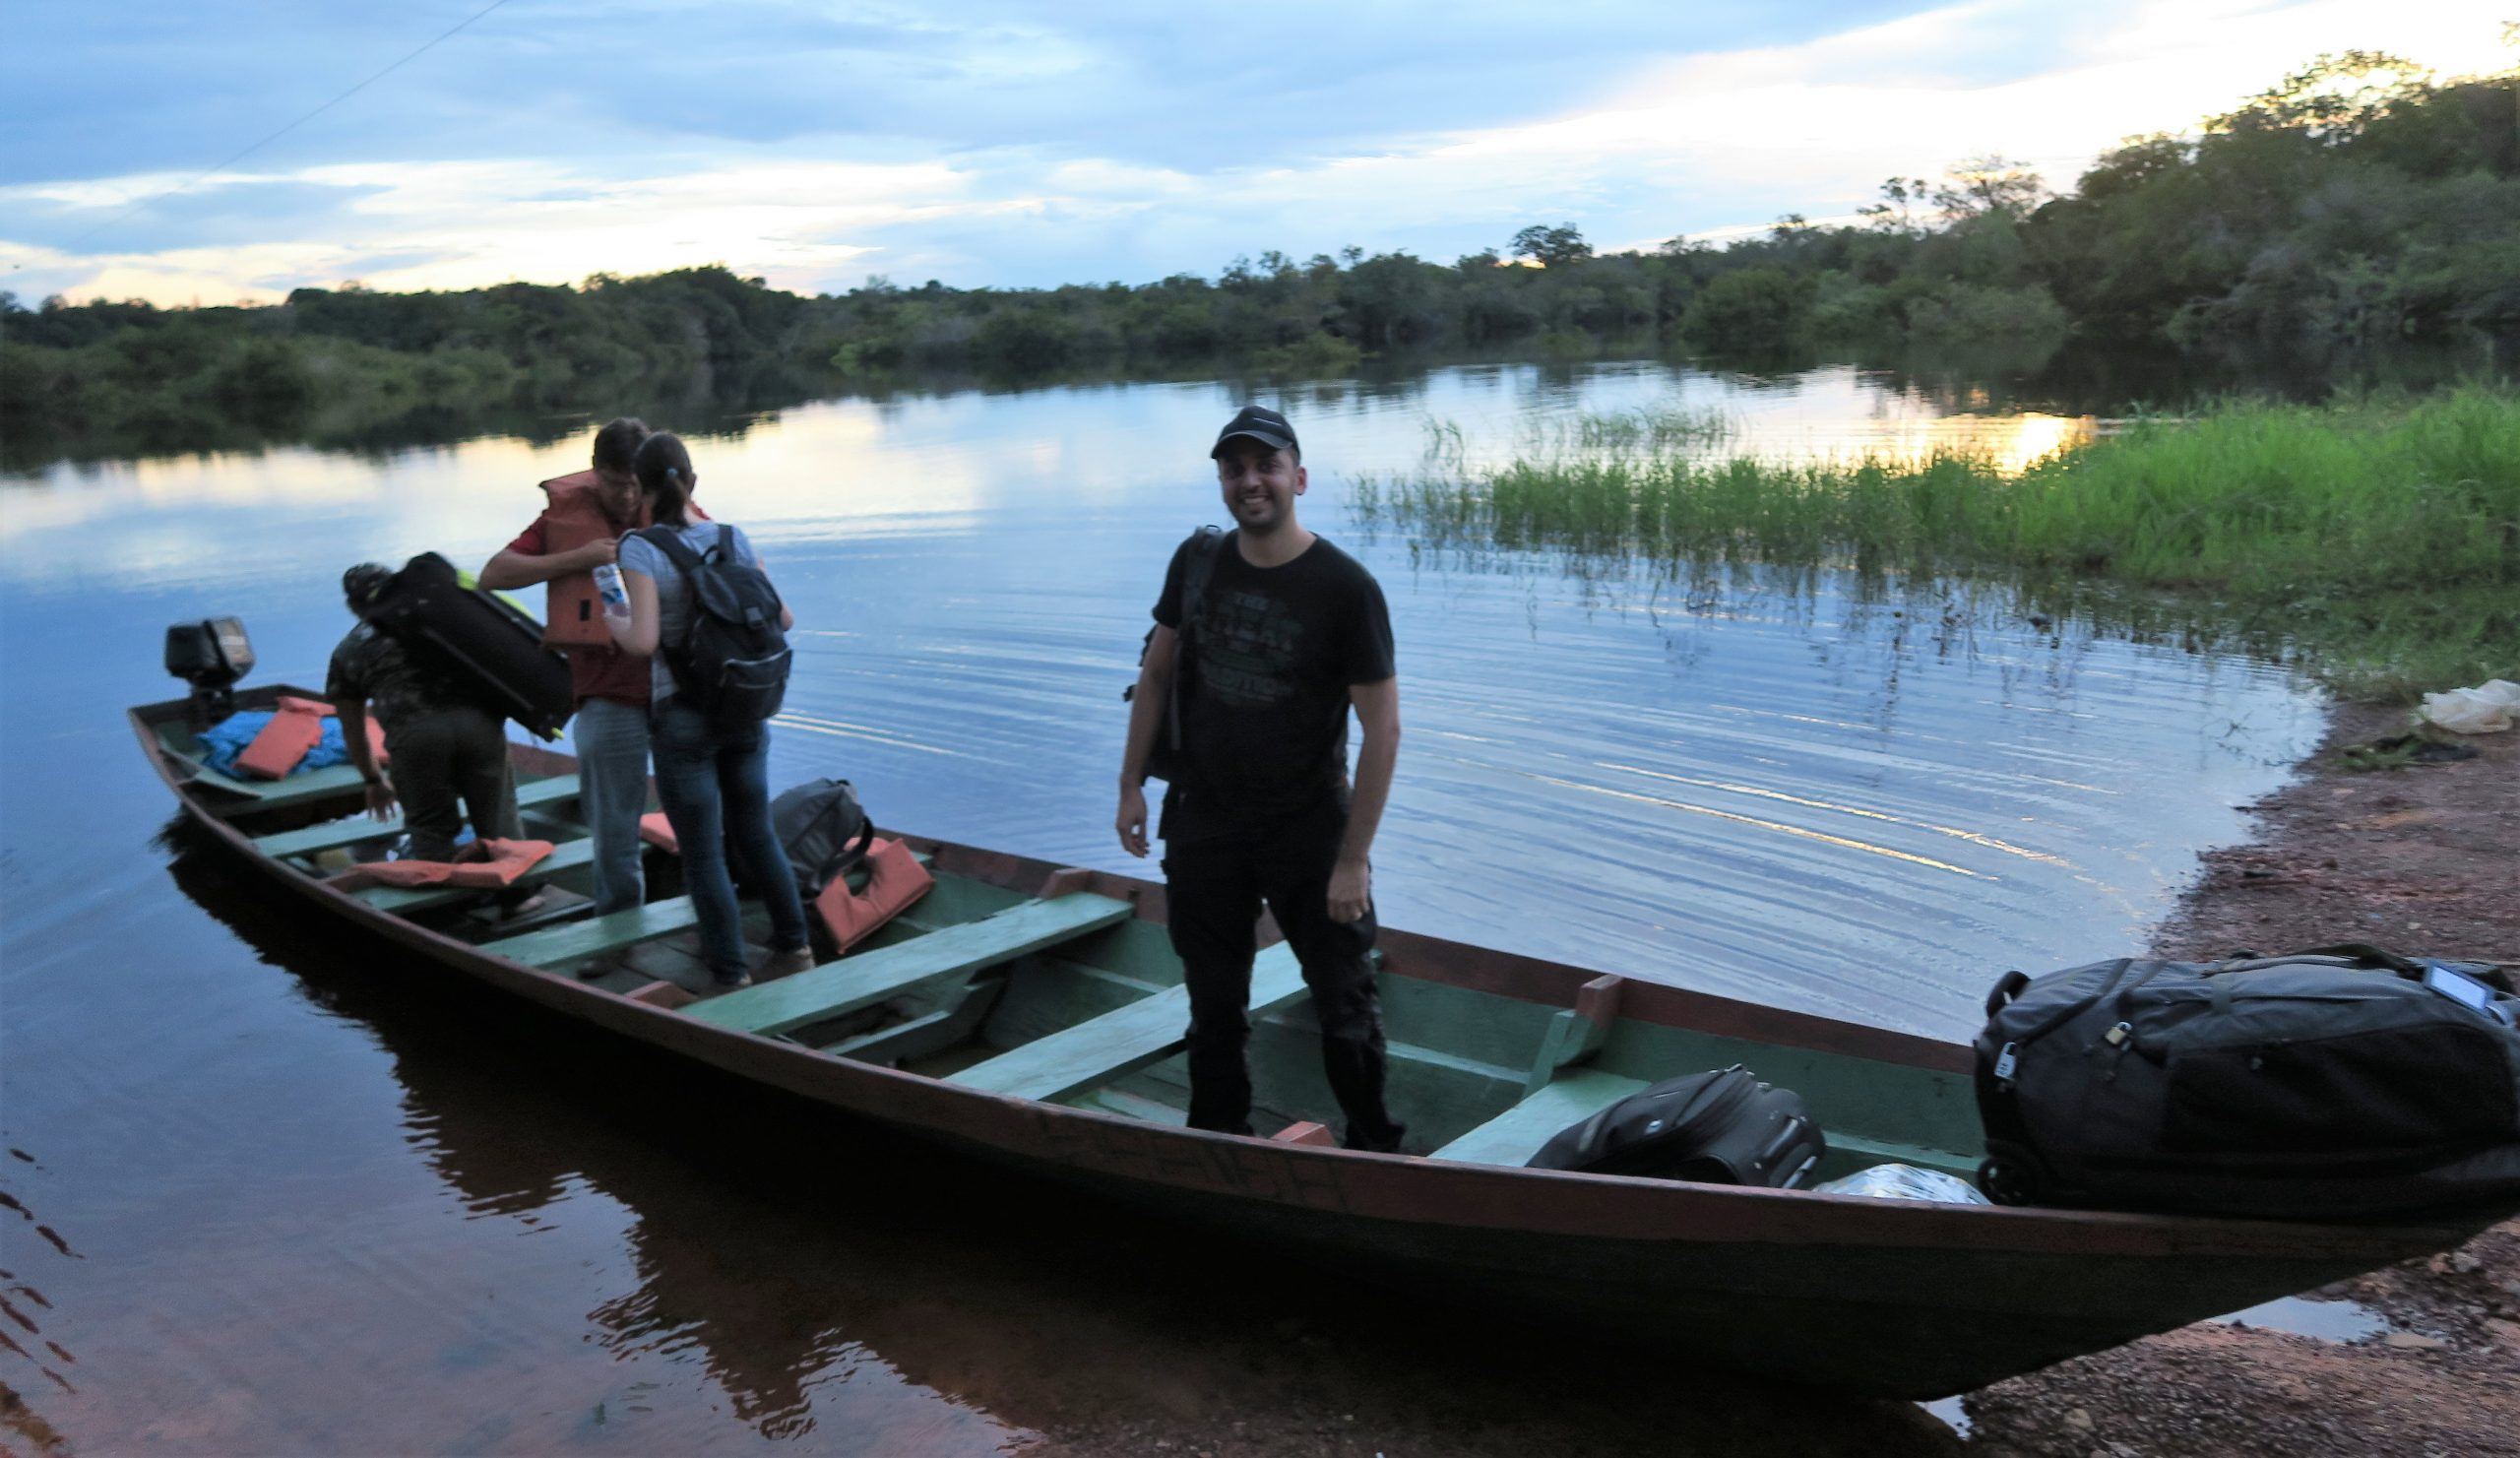 Journey into the Amazon Jungle from Manaus, Brazil